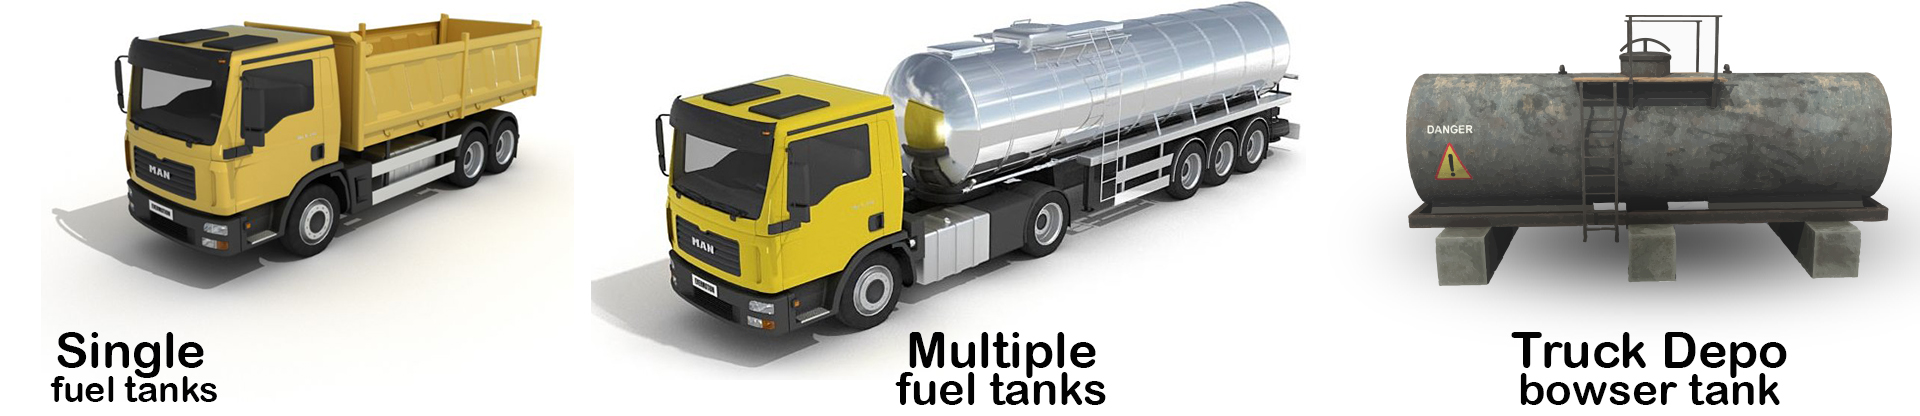 Different types of fuel tanks Digit fuel monitoring system can be installed o